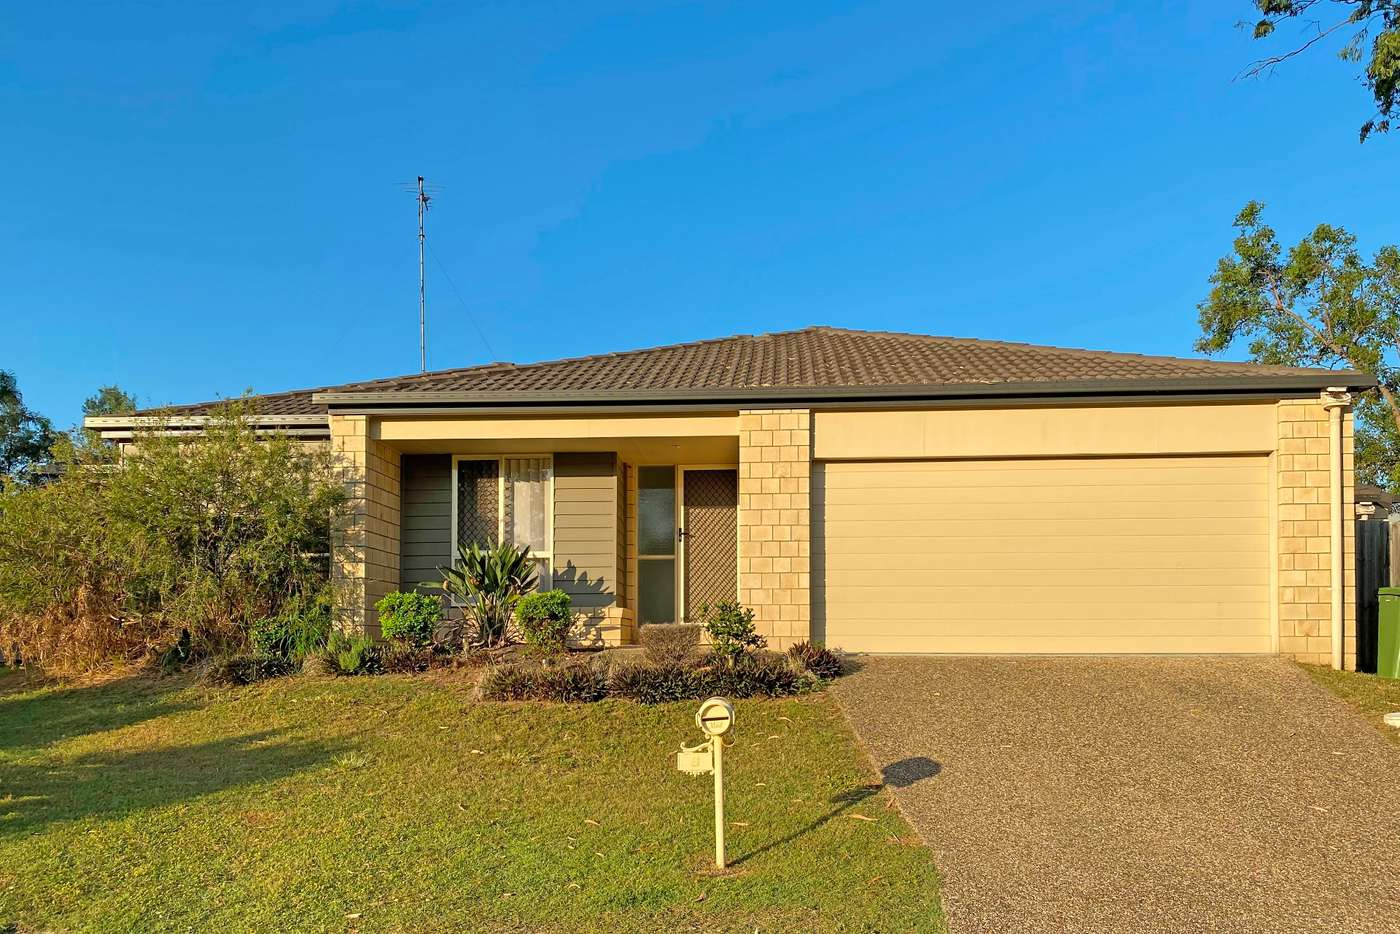 Main view of Homely house listing, 6 PRO HART CLOSE, Brassall QLD 4305